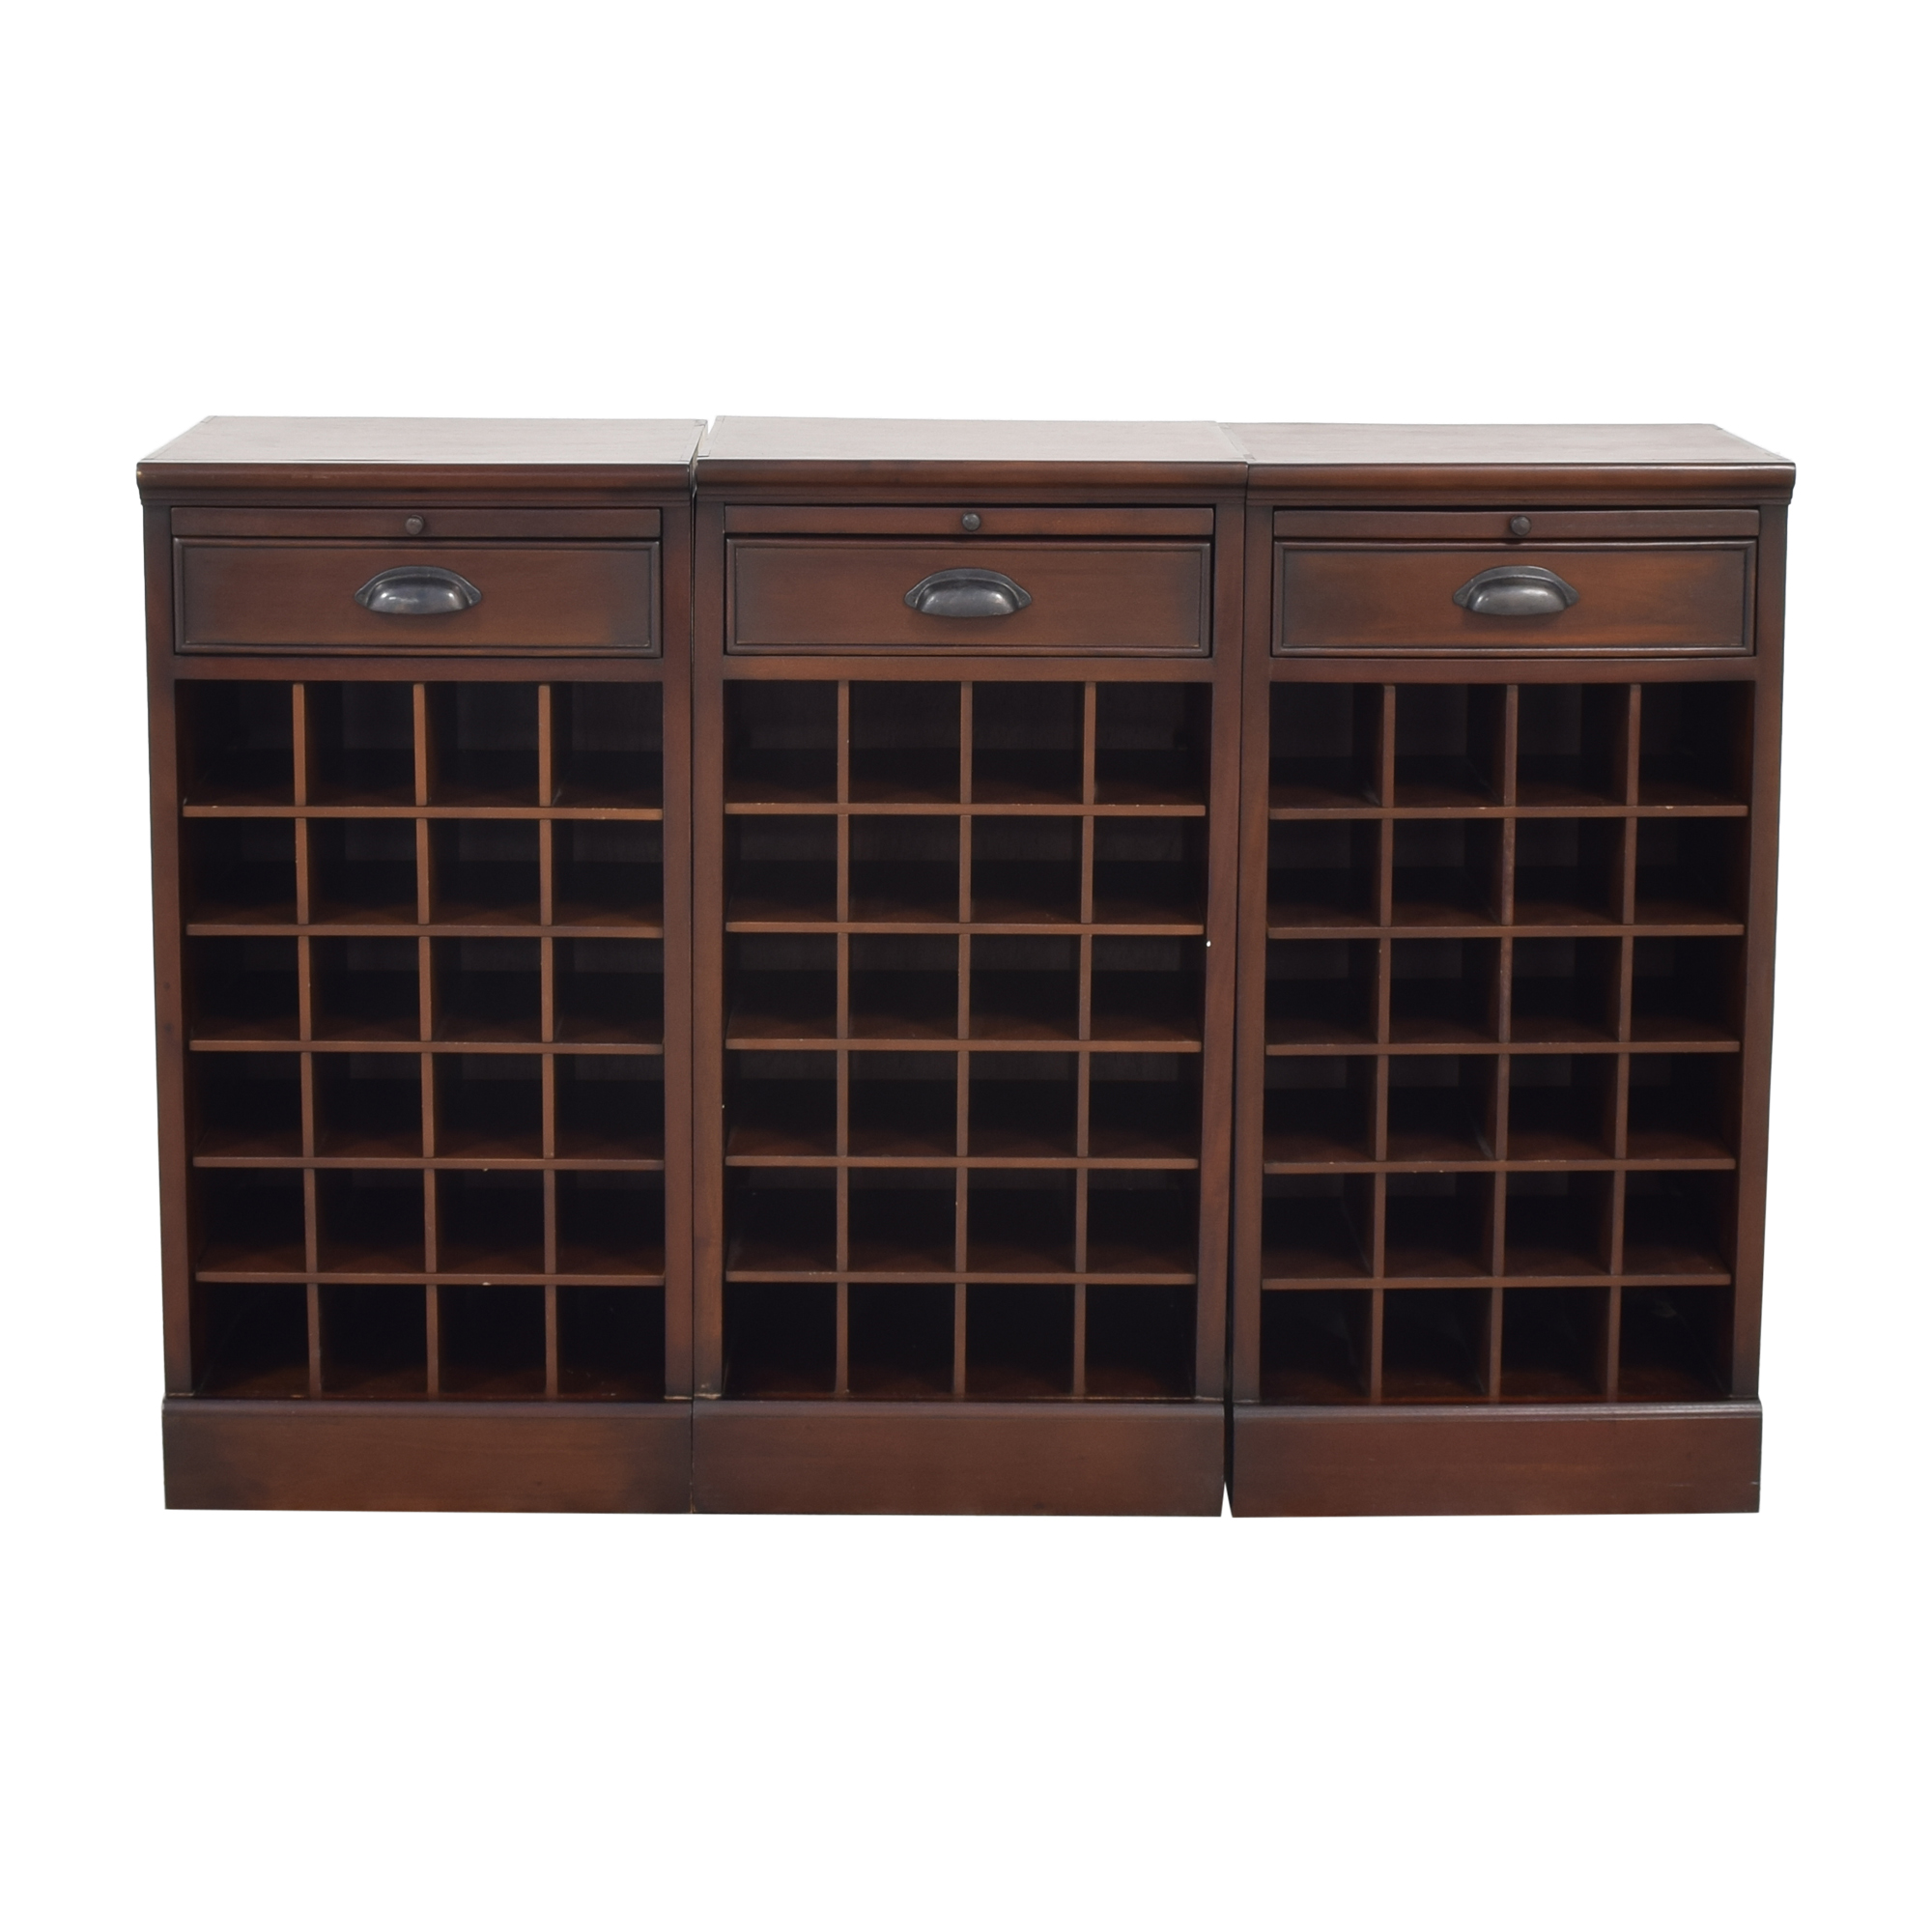 Pottery Barn Pottery Barn Modular Bar Wine Cabinet second hand